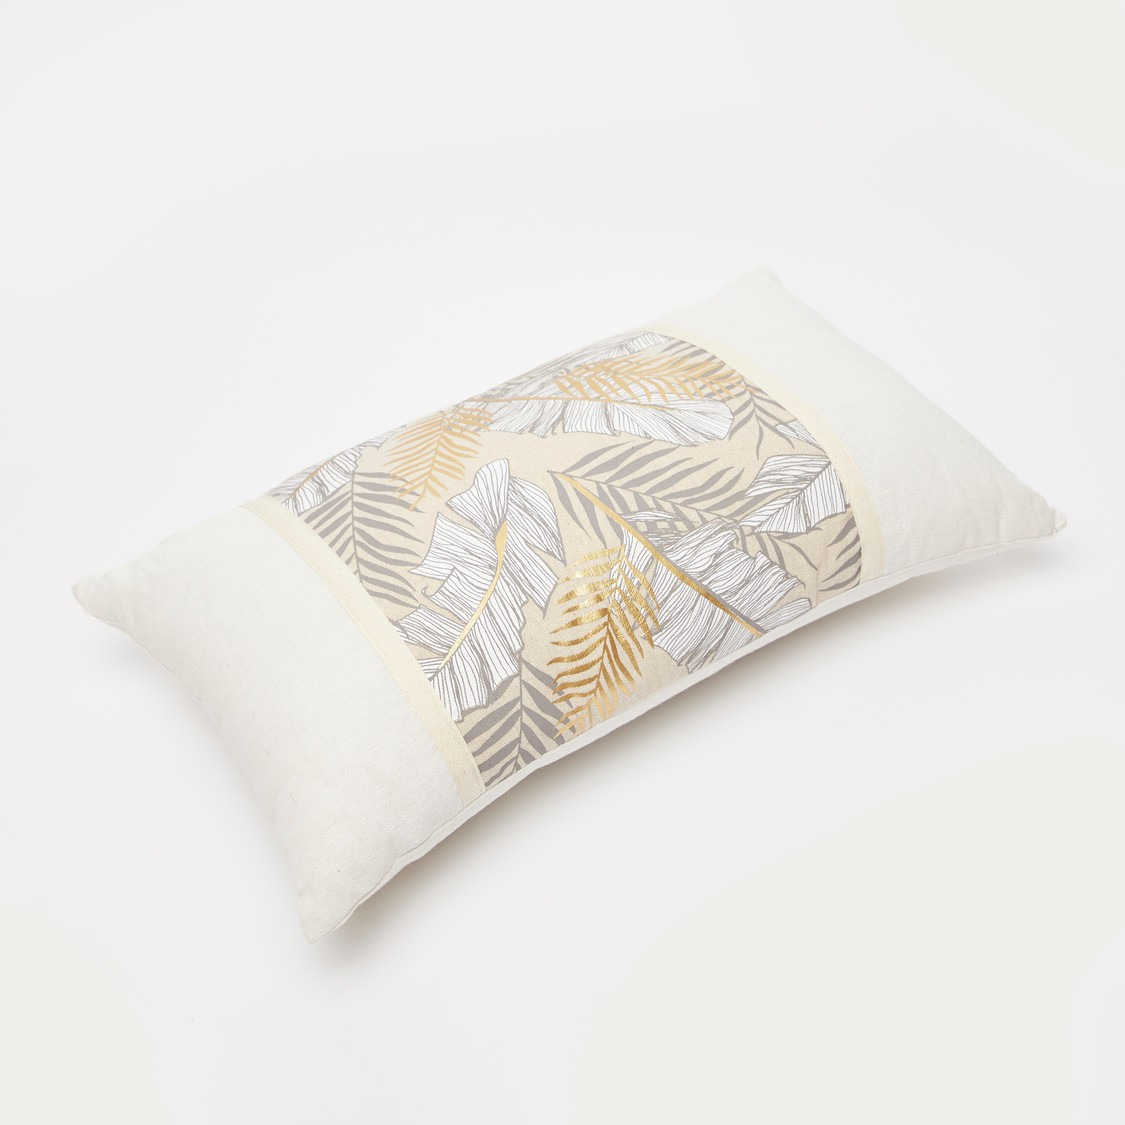 Printed Filled Cushion - 50x30 cms